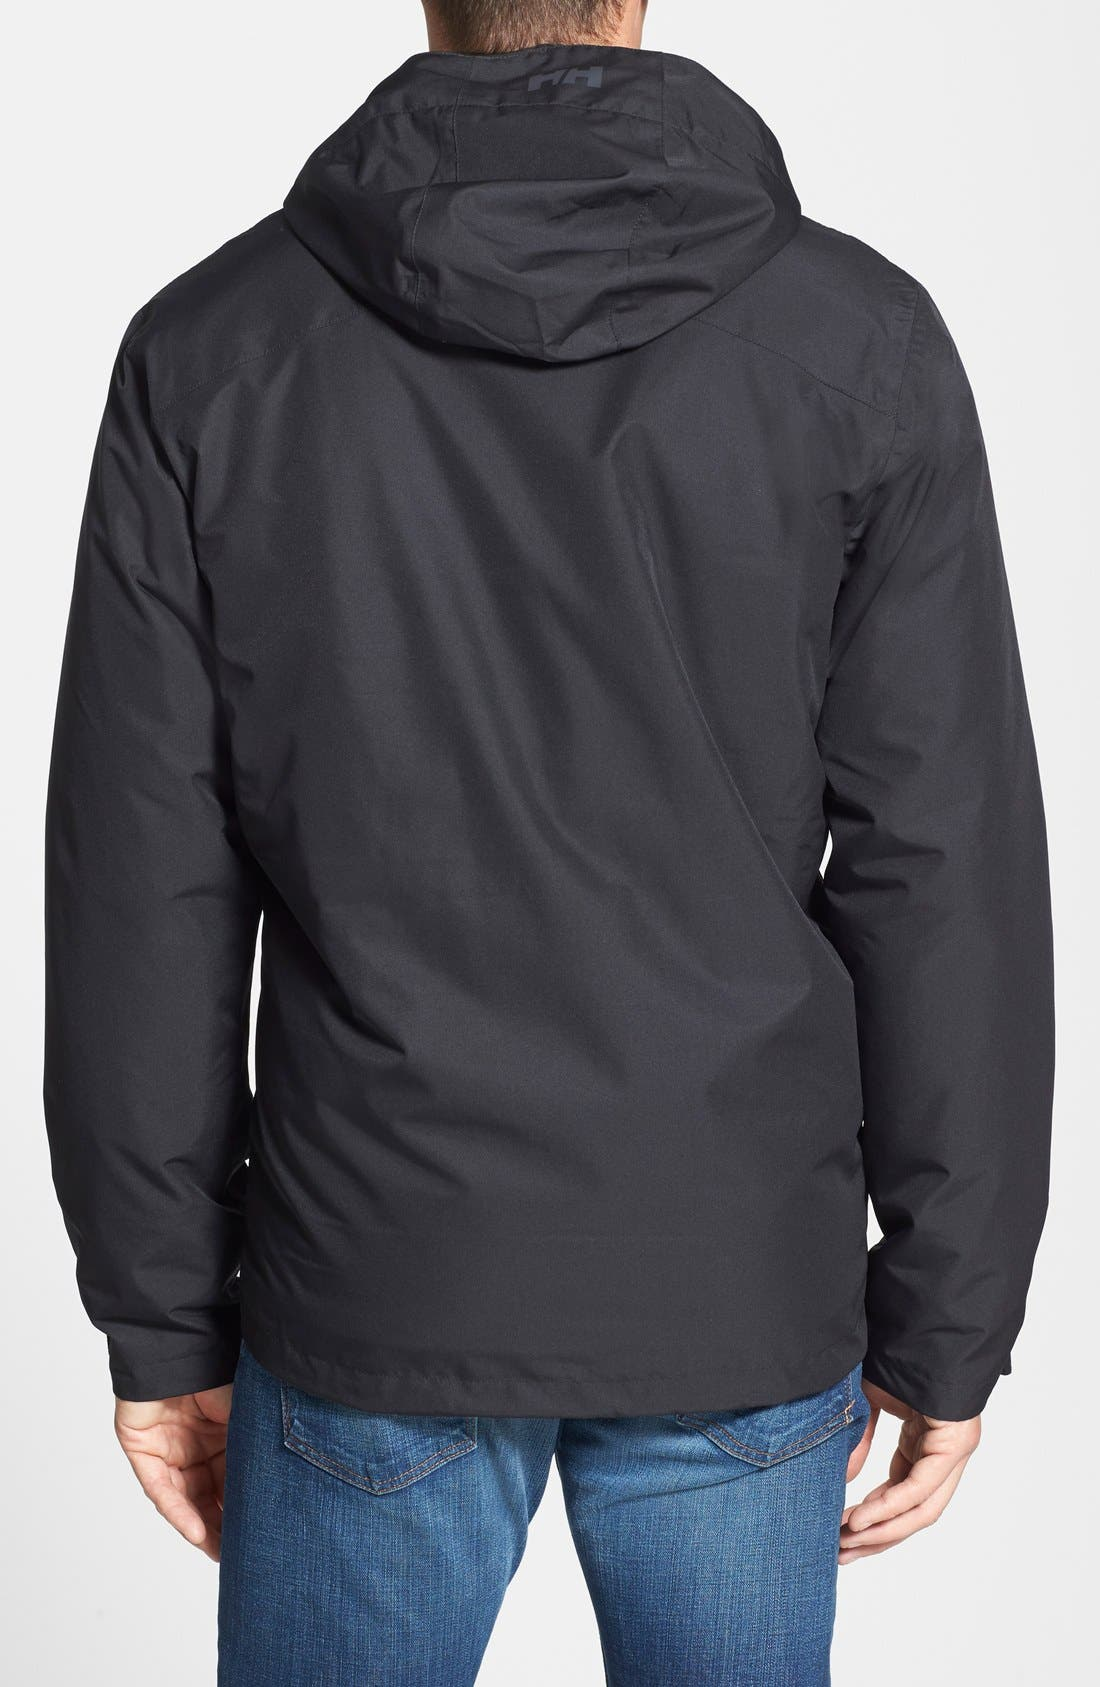 Squamish 3-in-1 Water Repellent Hooded Jacket,                             Alternate thumbnail 2, color,                             BLACK